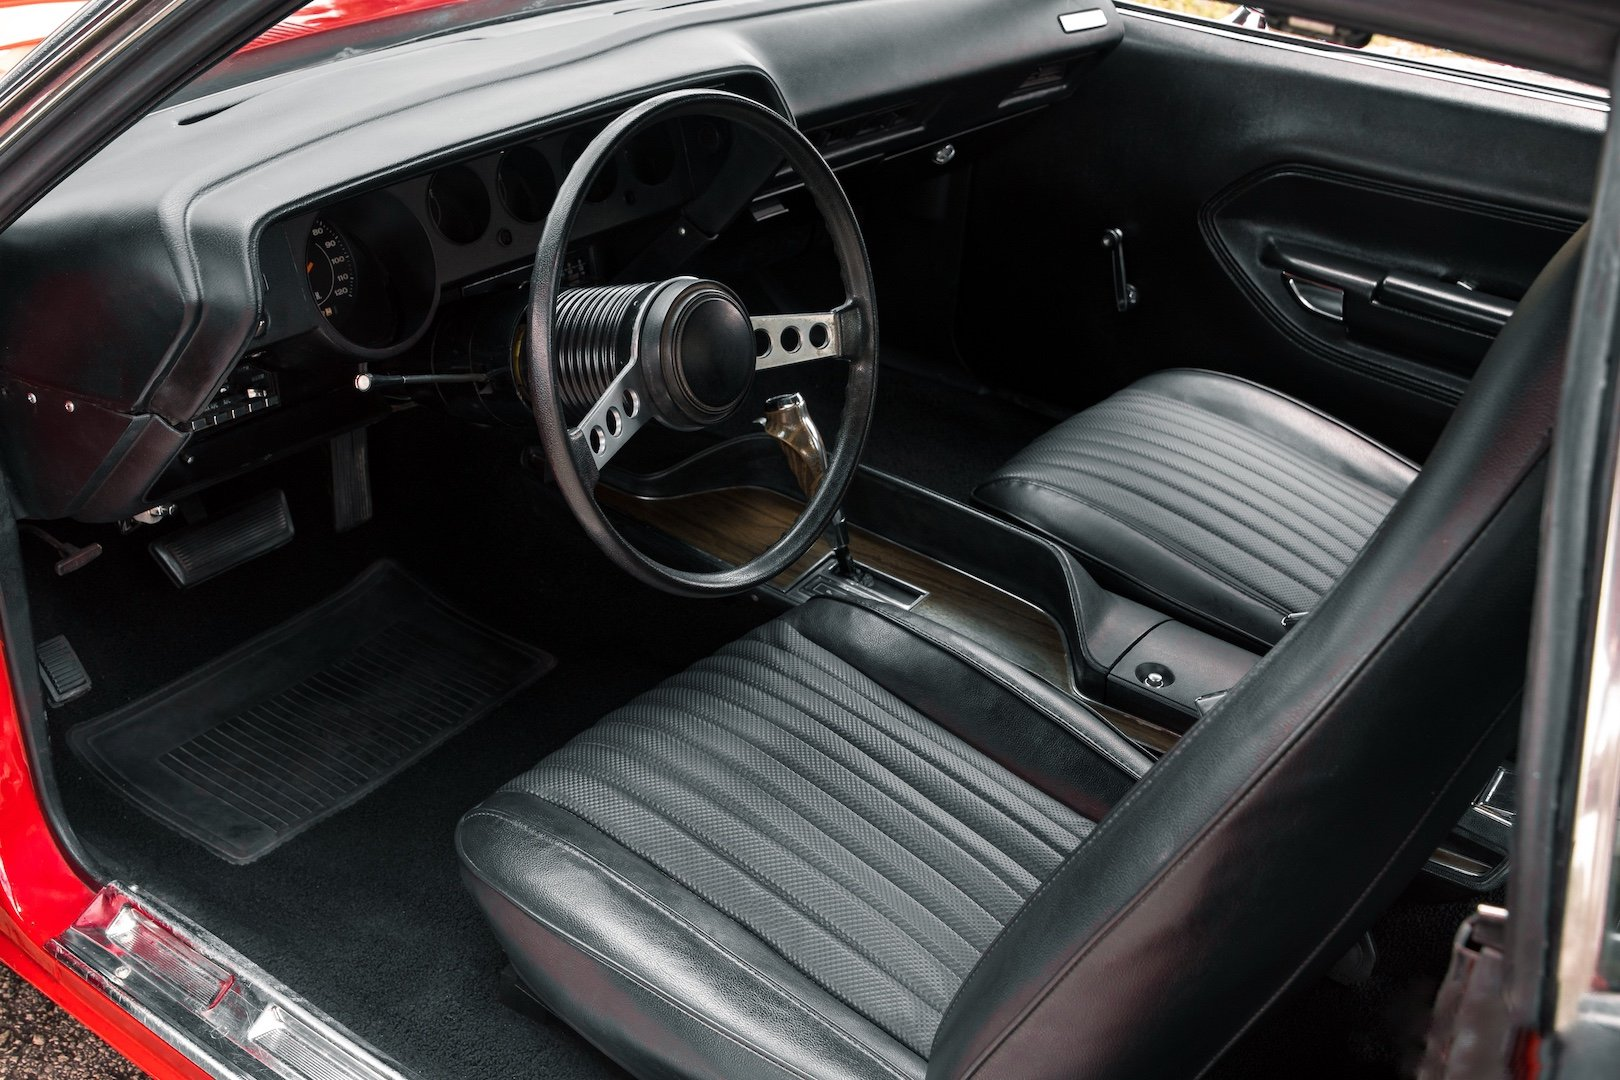 1973 Plymouth Barracuda 440 Big Block - FULLY RESTORED For Sale (picture 6 of 6)